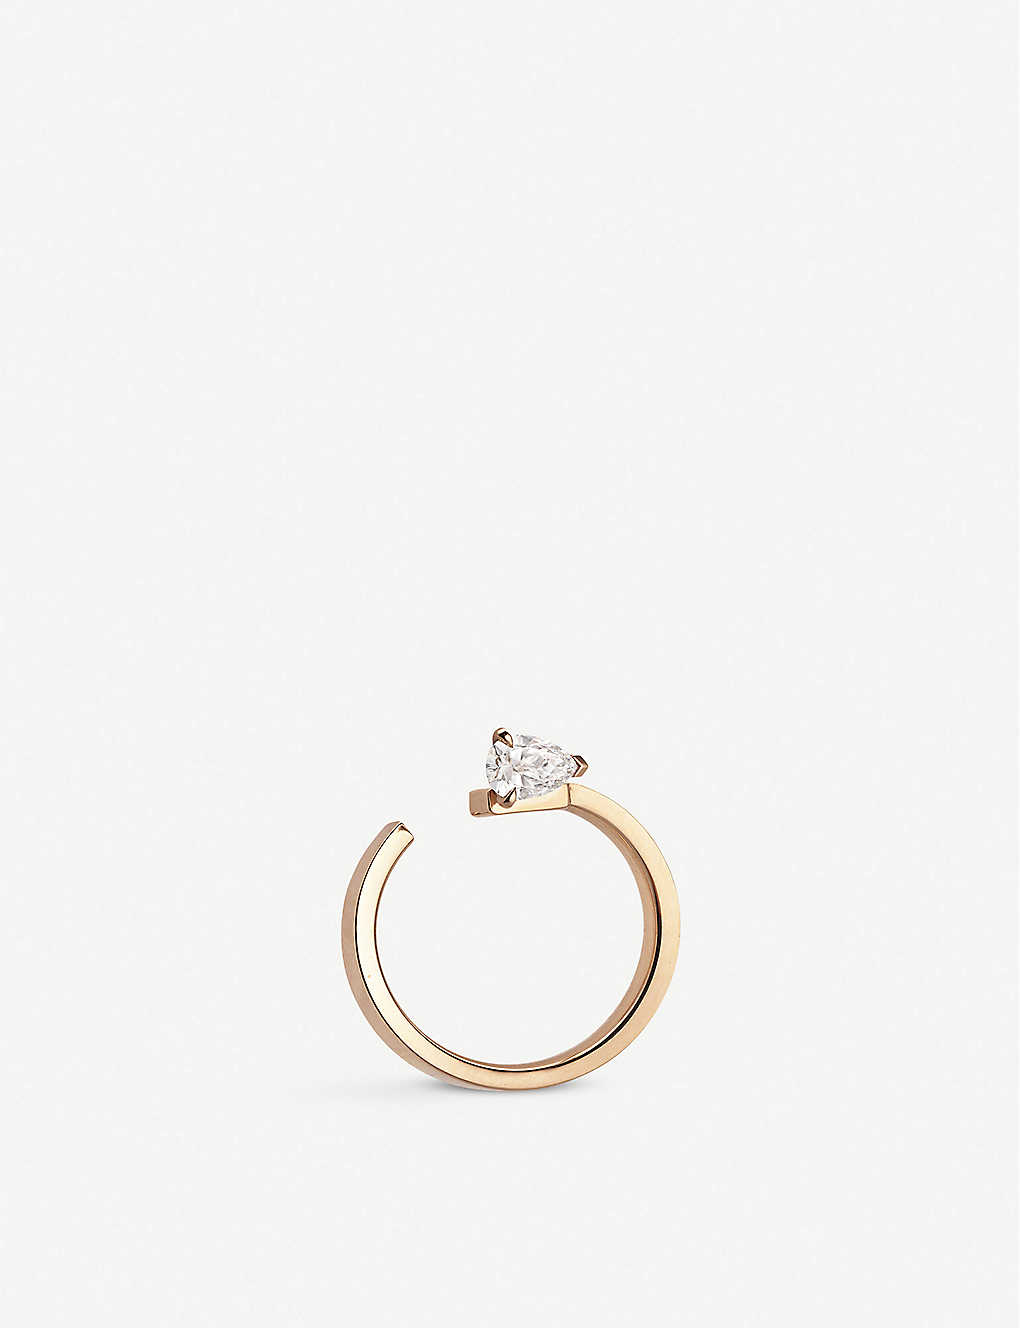 REPOSSI: Serti Sur Vide 18ct rose-gold and diamond ring